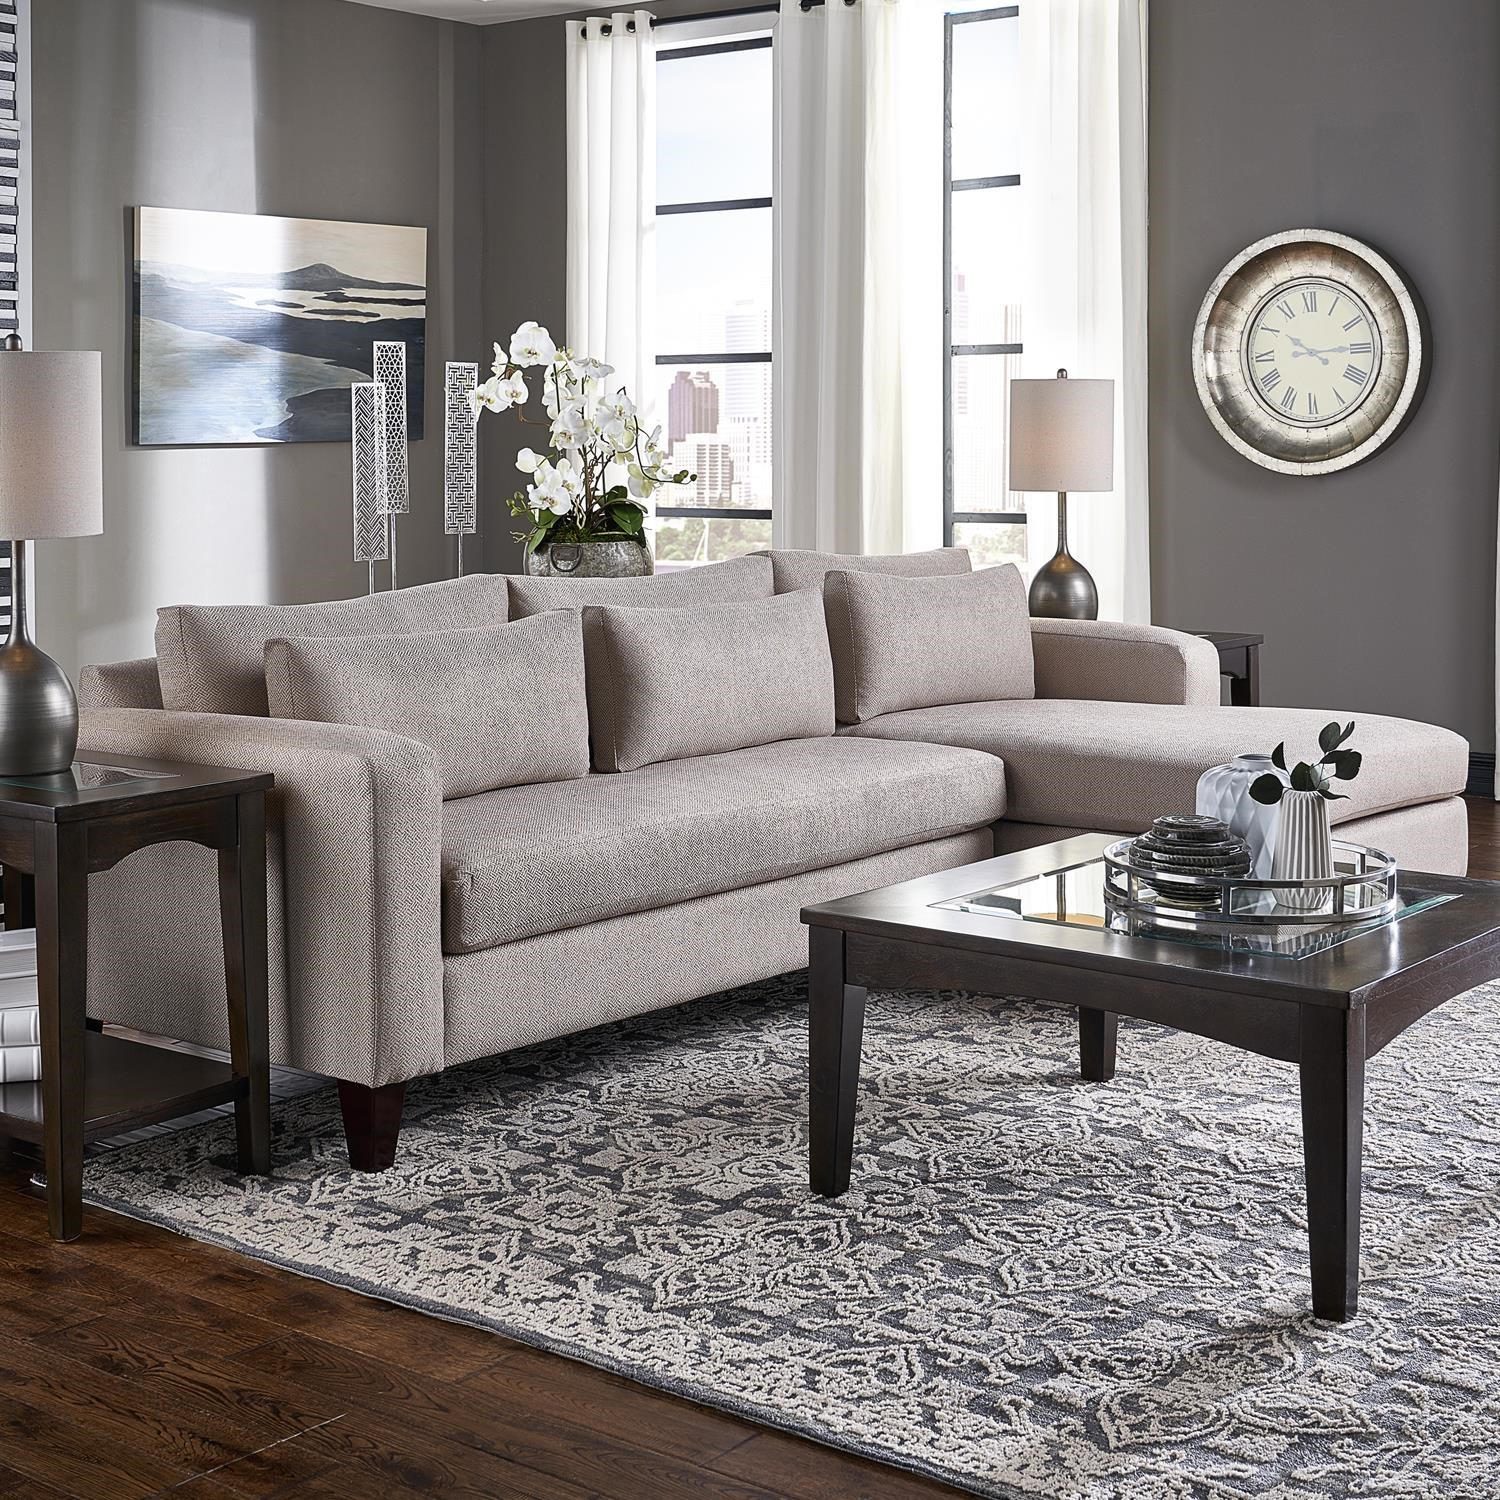 Parker Sofa Chaise by Belfort Essentials at Belfort Furniture